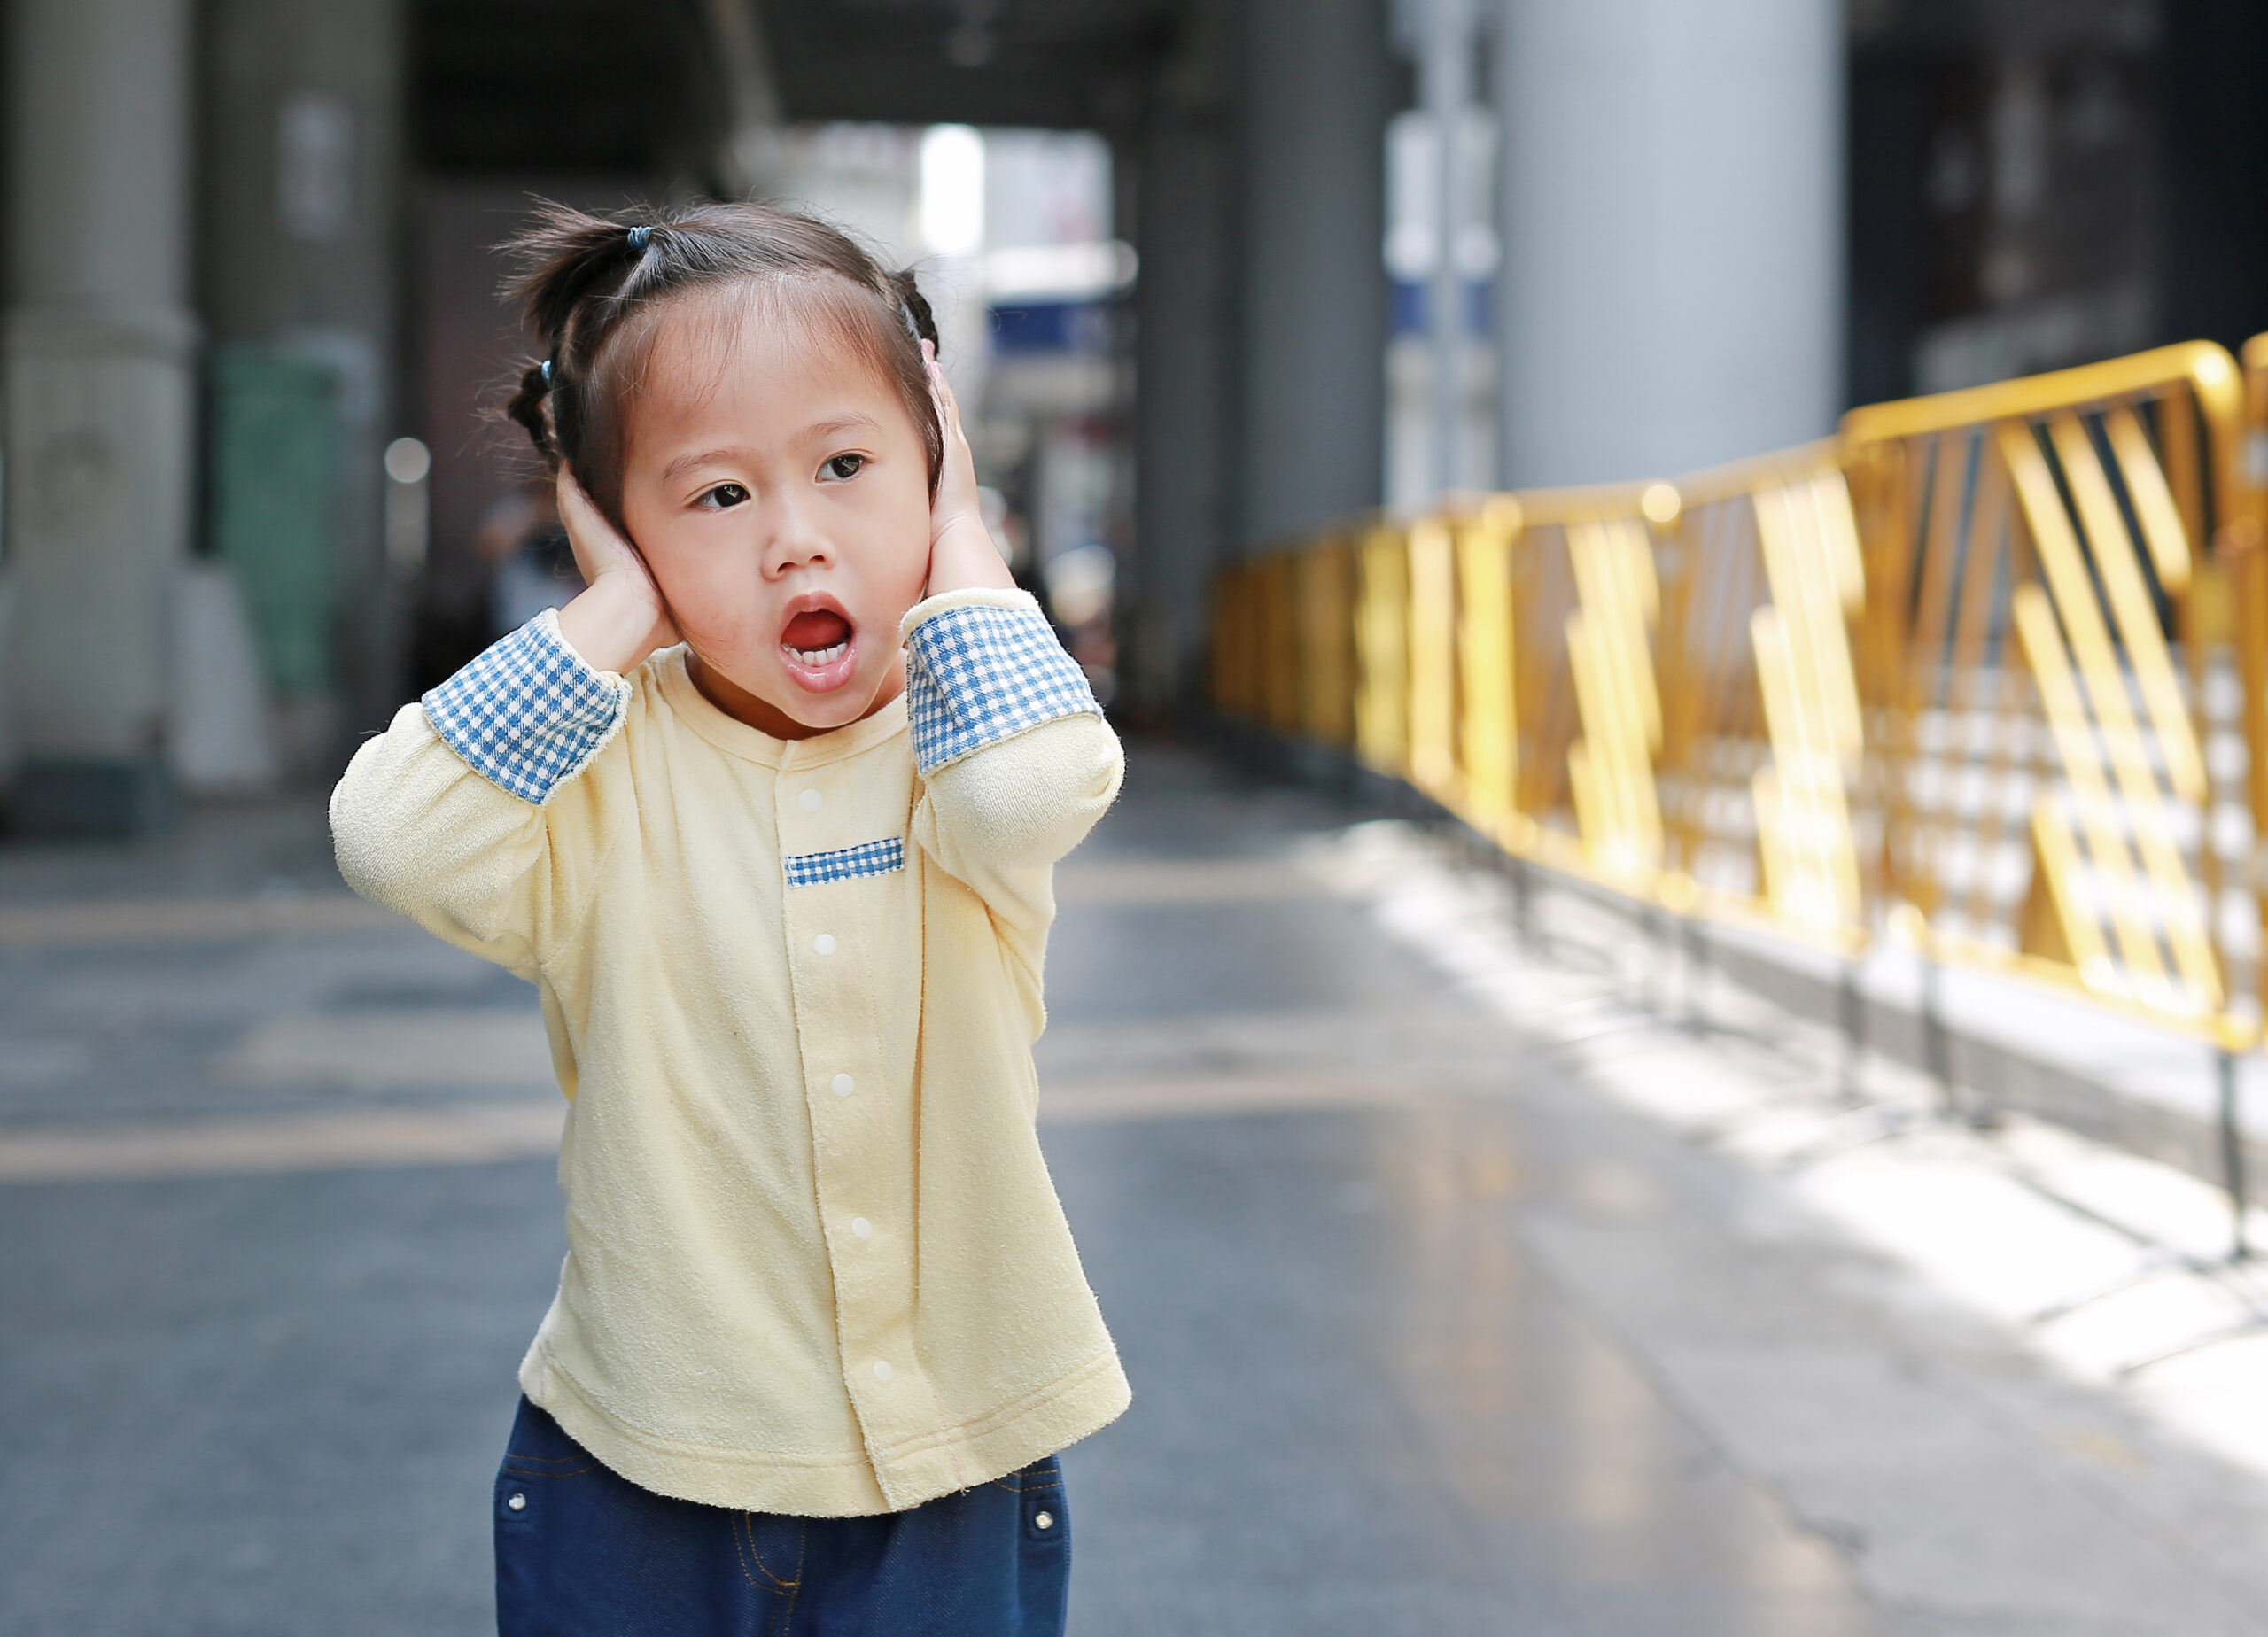 What Should I Do If My Child Refuses to Listen?